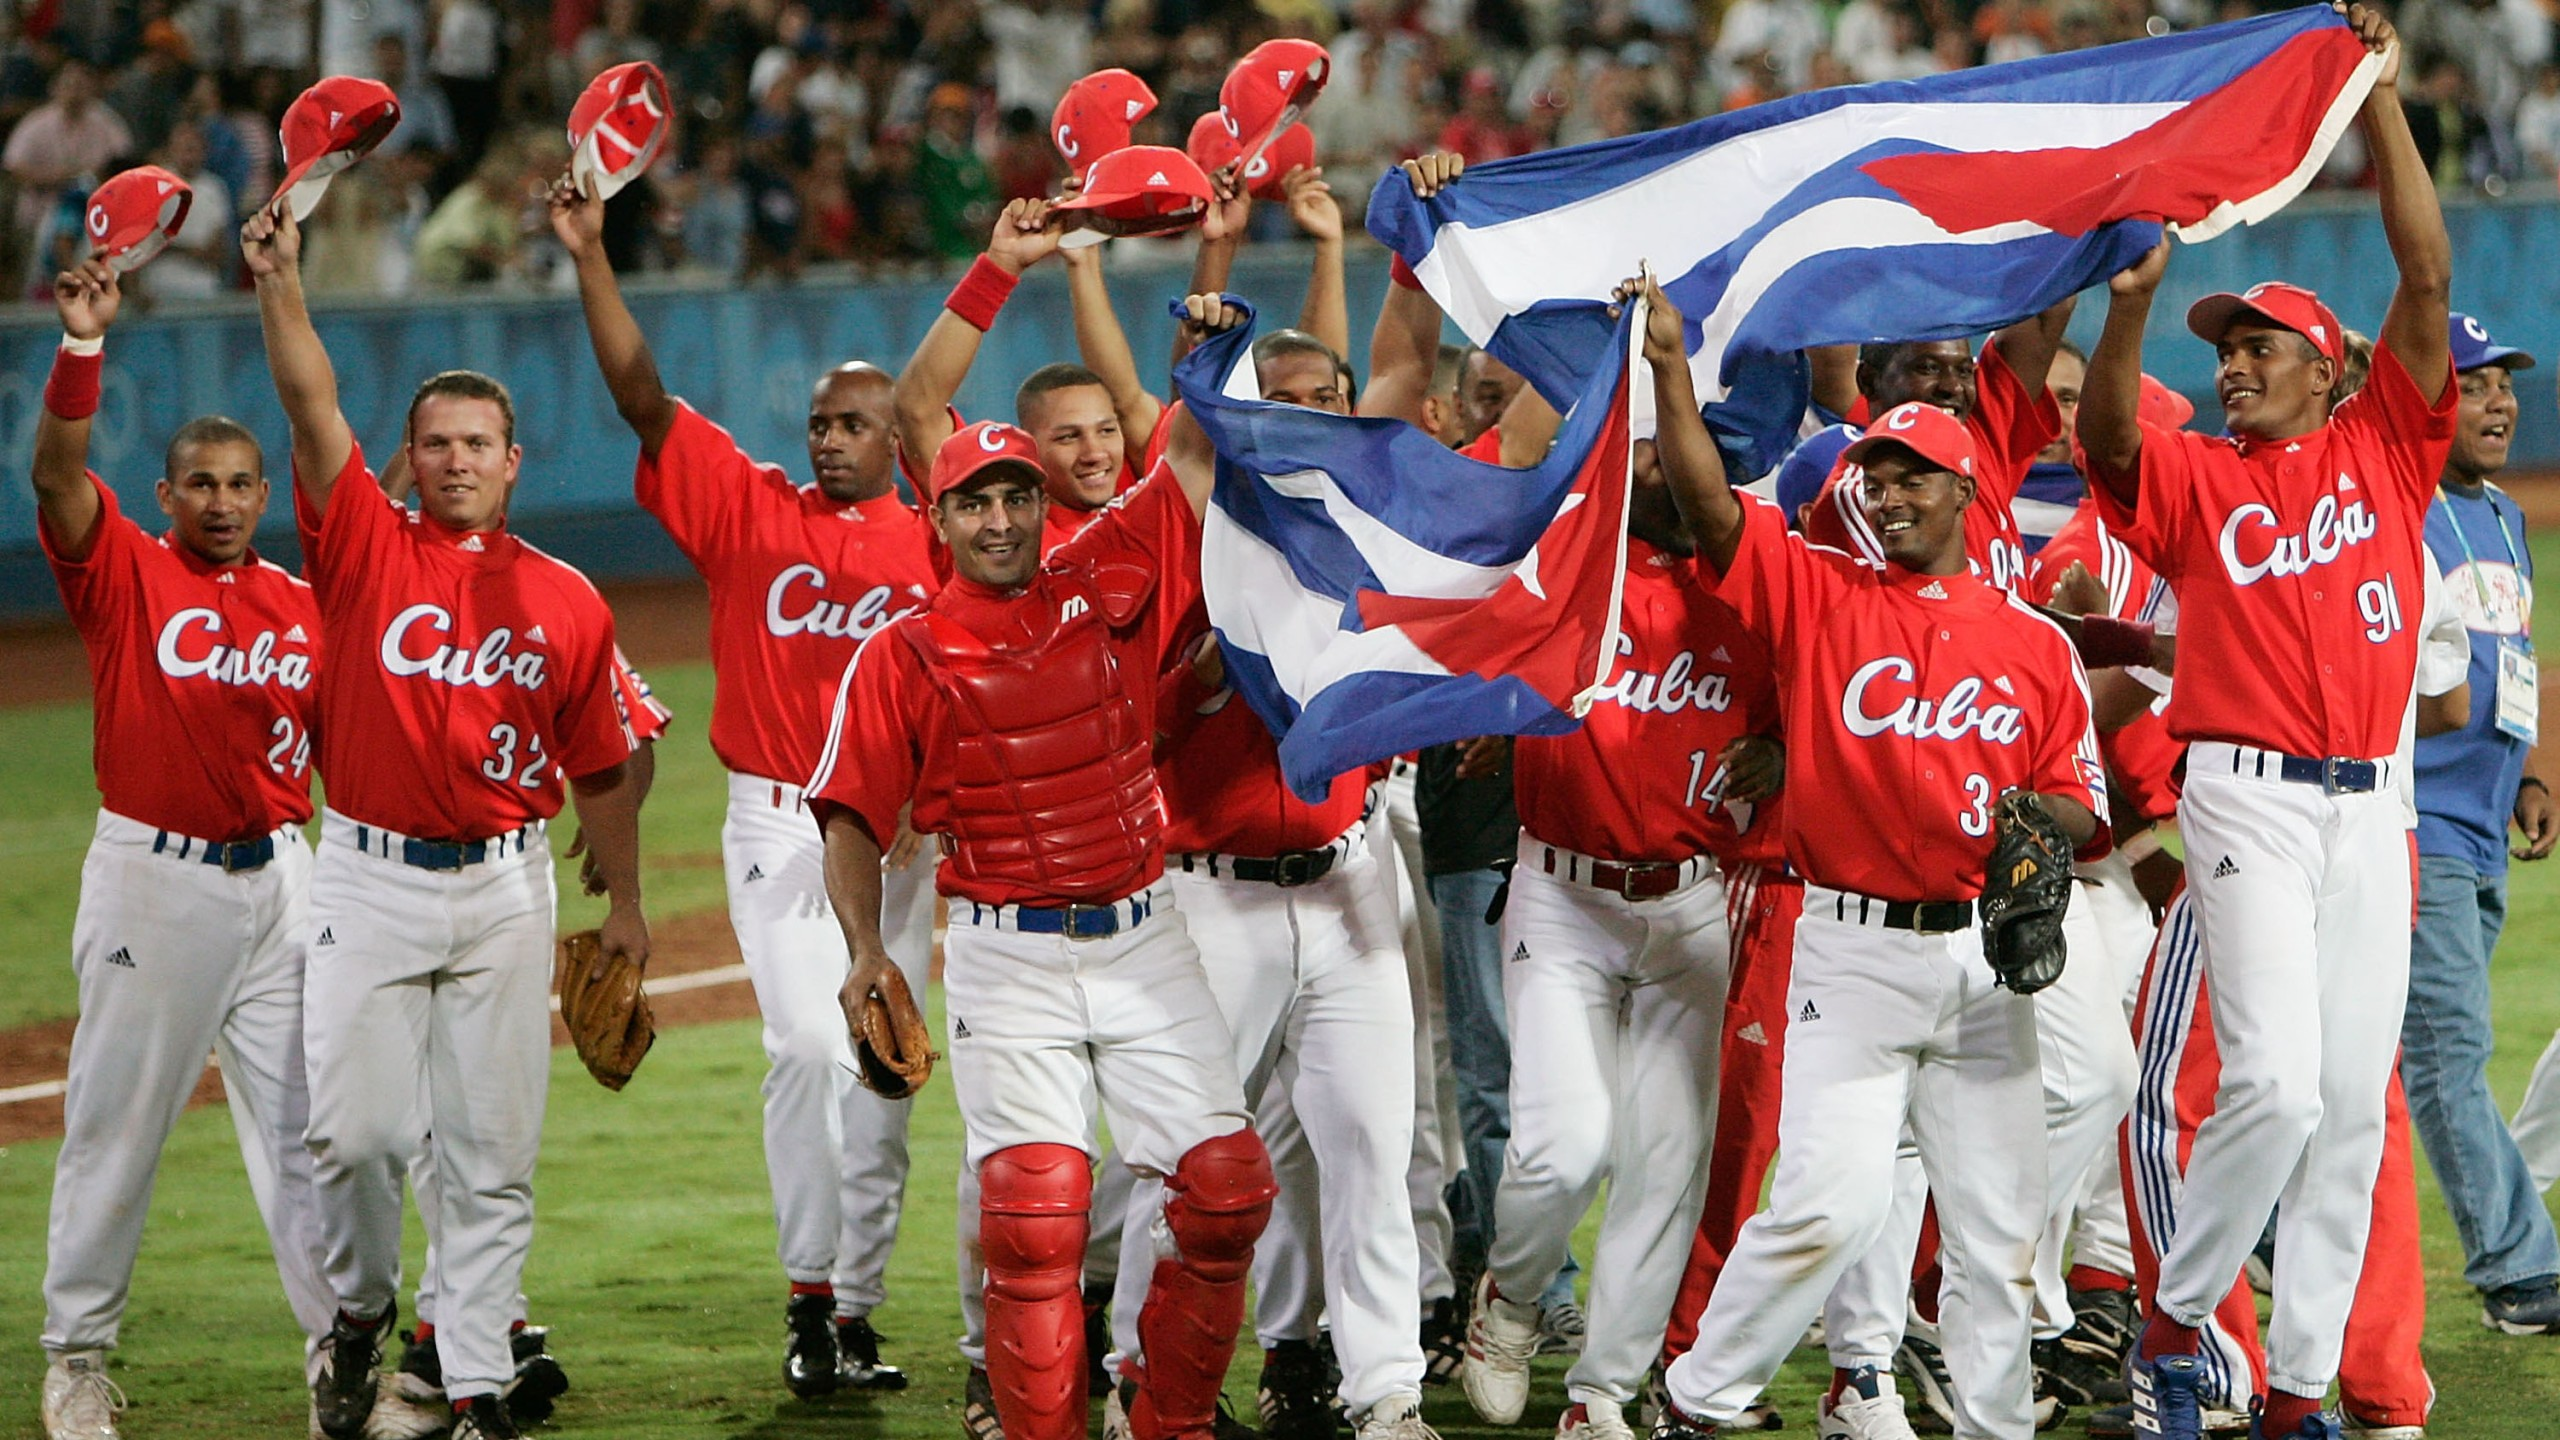 Cuba celebrates their victory over Australia in the gold medal baseball game on August 25, 2004 during the Athens 2004 Summer Olympic Games at the Baseball Centre in the Helliniko Olympic Complex in Athens, Greece. (Credit: Donald Miralle/Getty Images)